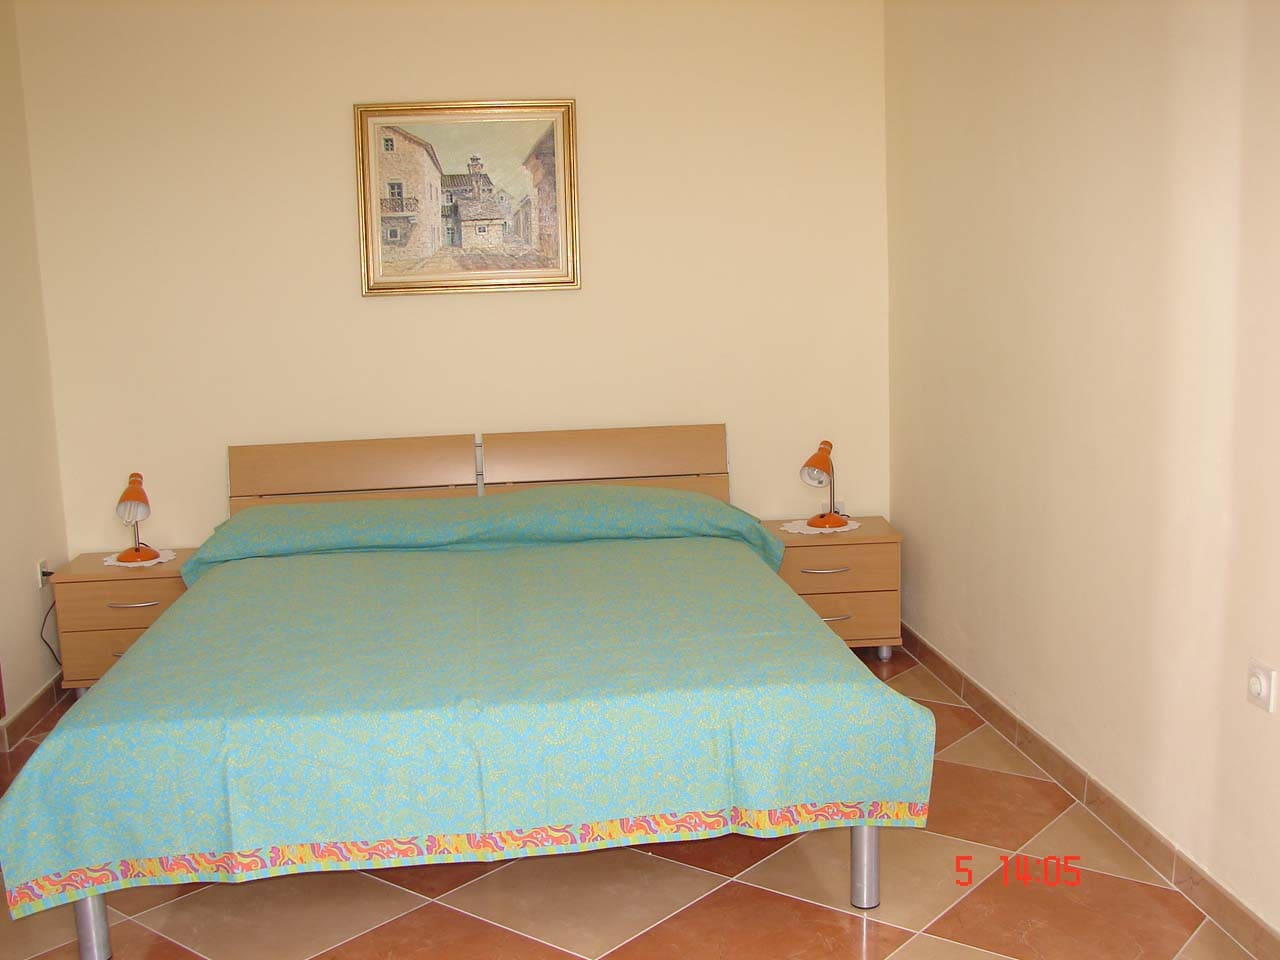 Spacious apartment,  on the first floor, composed of: bedroom with one double and one single bed , bathroom,   kitchen with dining area,  balcony. Grill  and dining area in the garden. Located in the quiet area, close to beach and to village center.